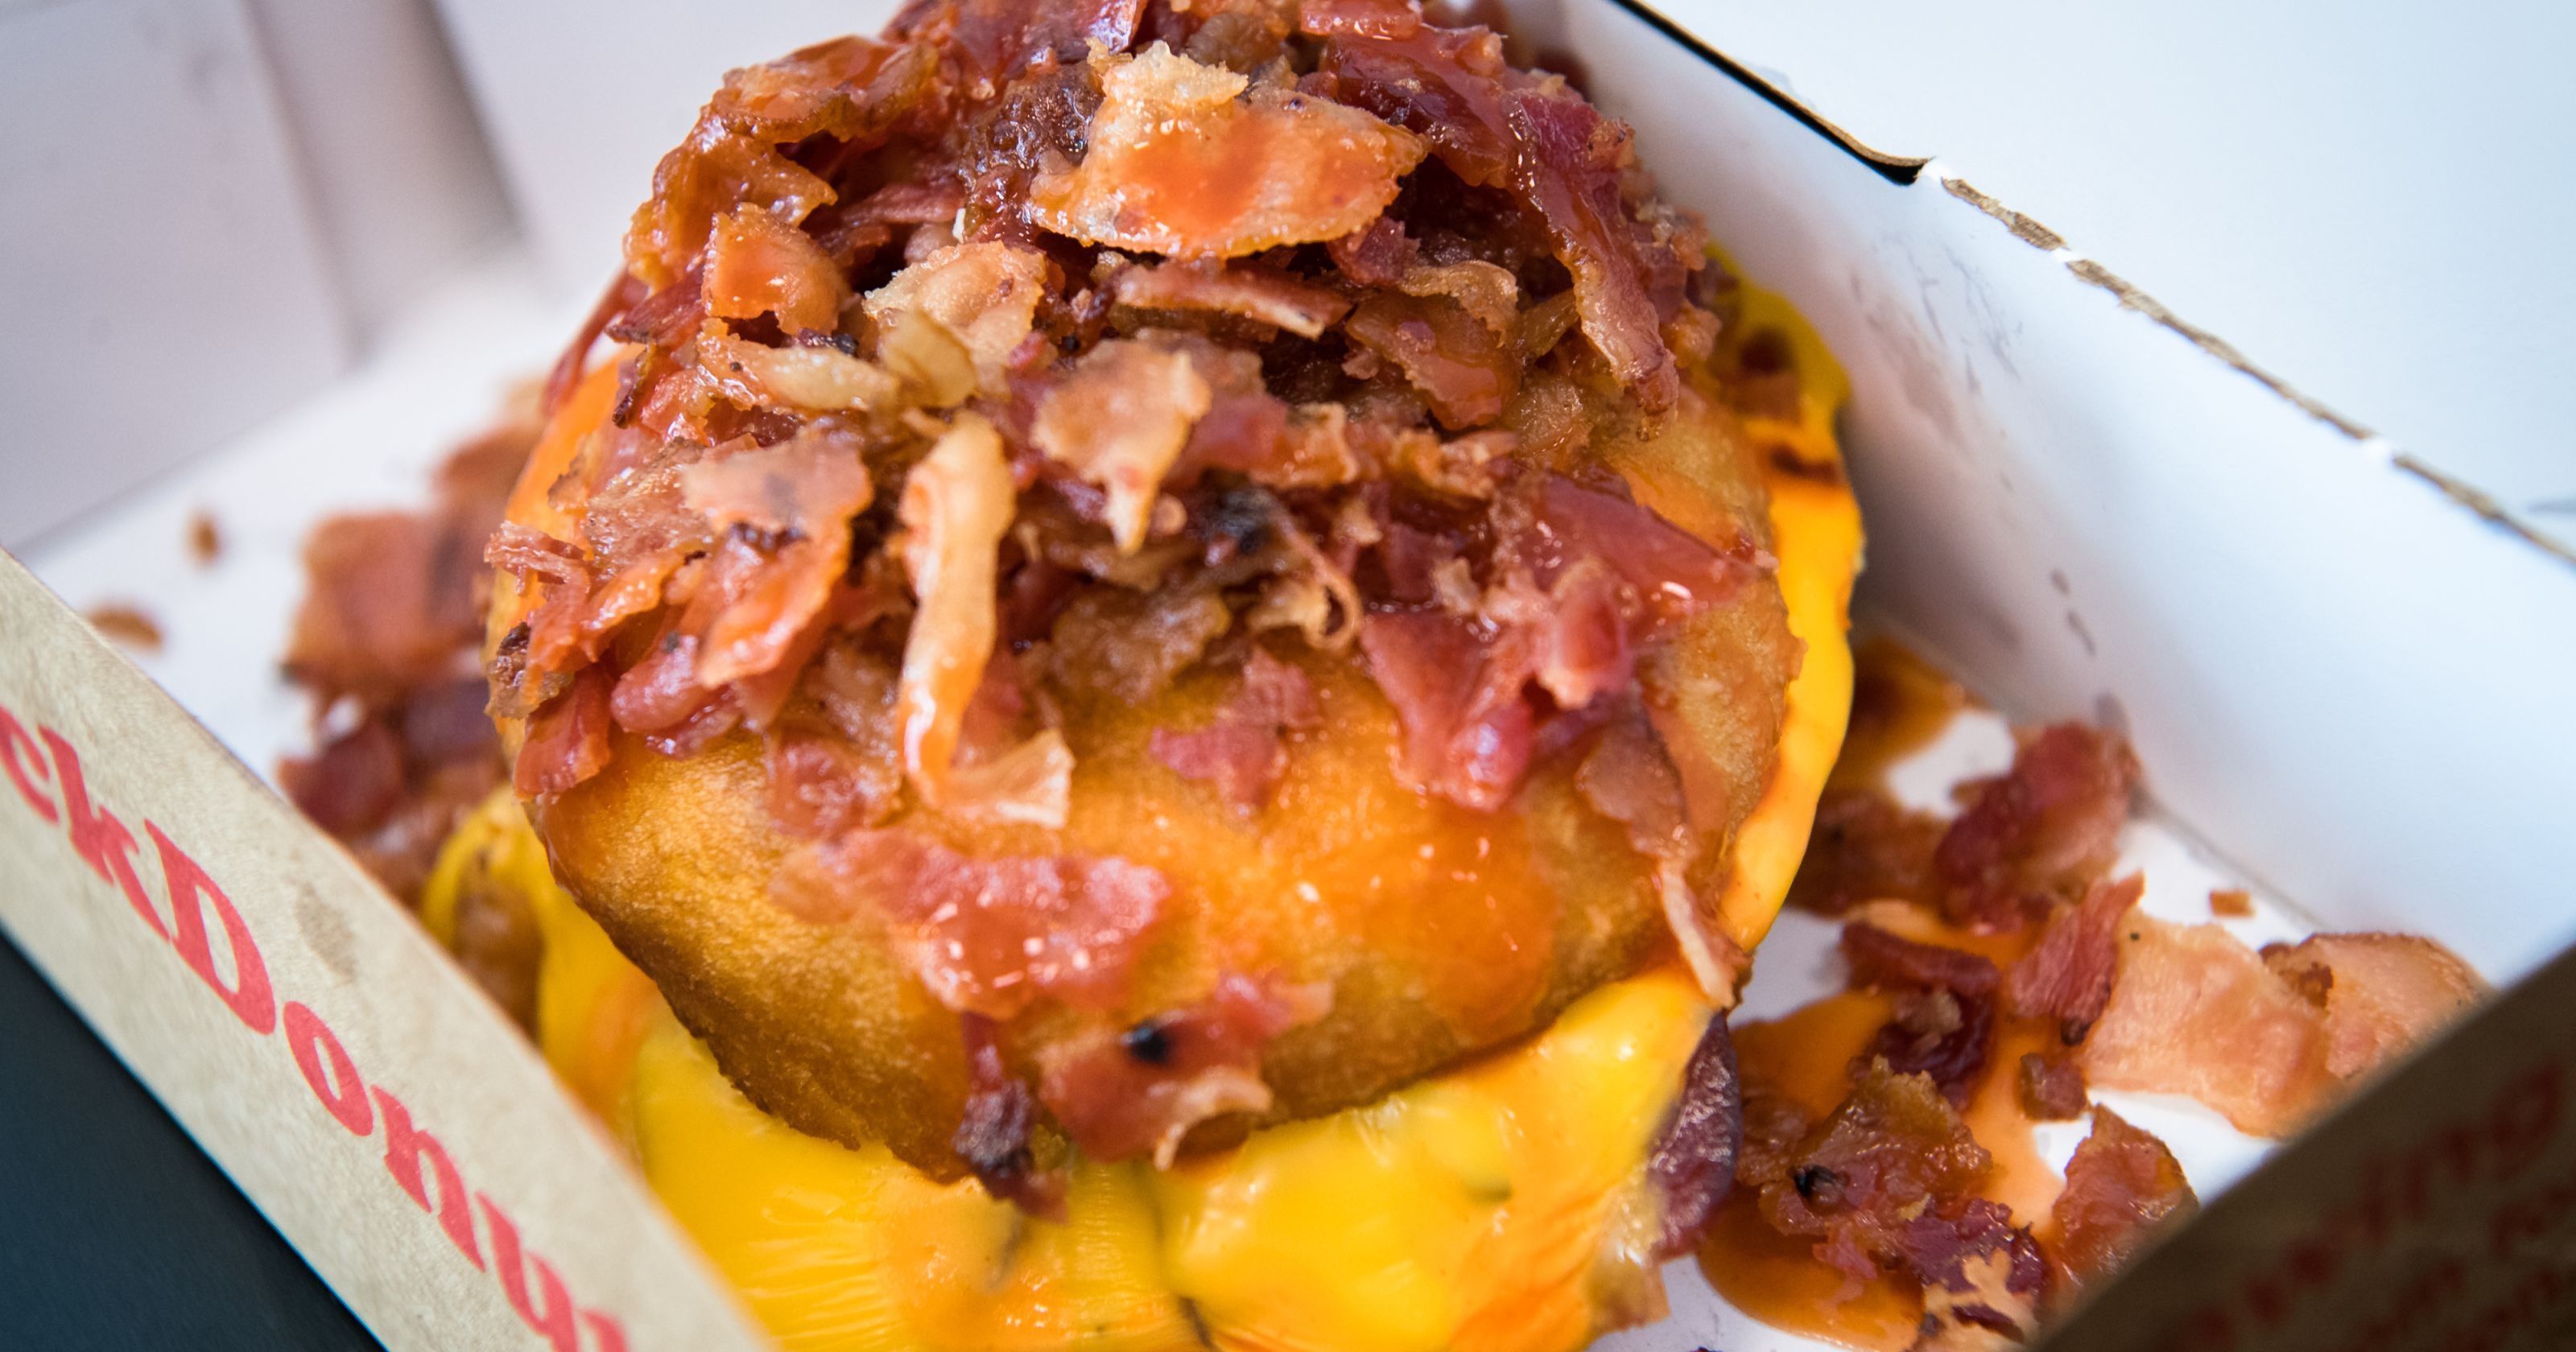 The oddest and best donuts: bacon, hot sauce, probiotics